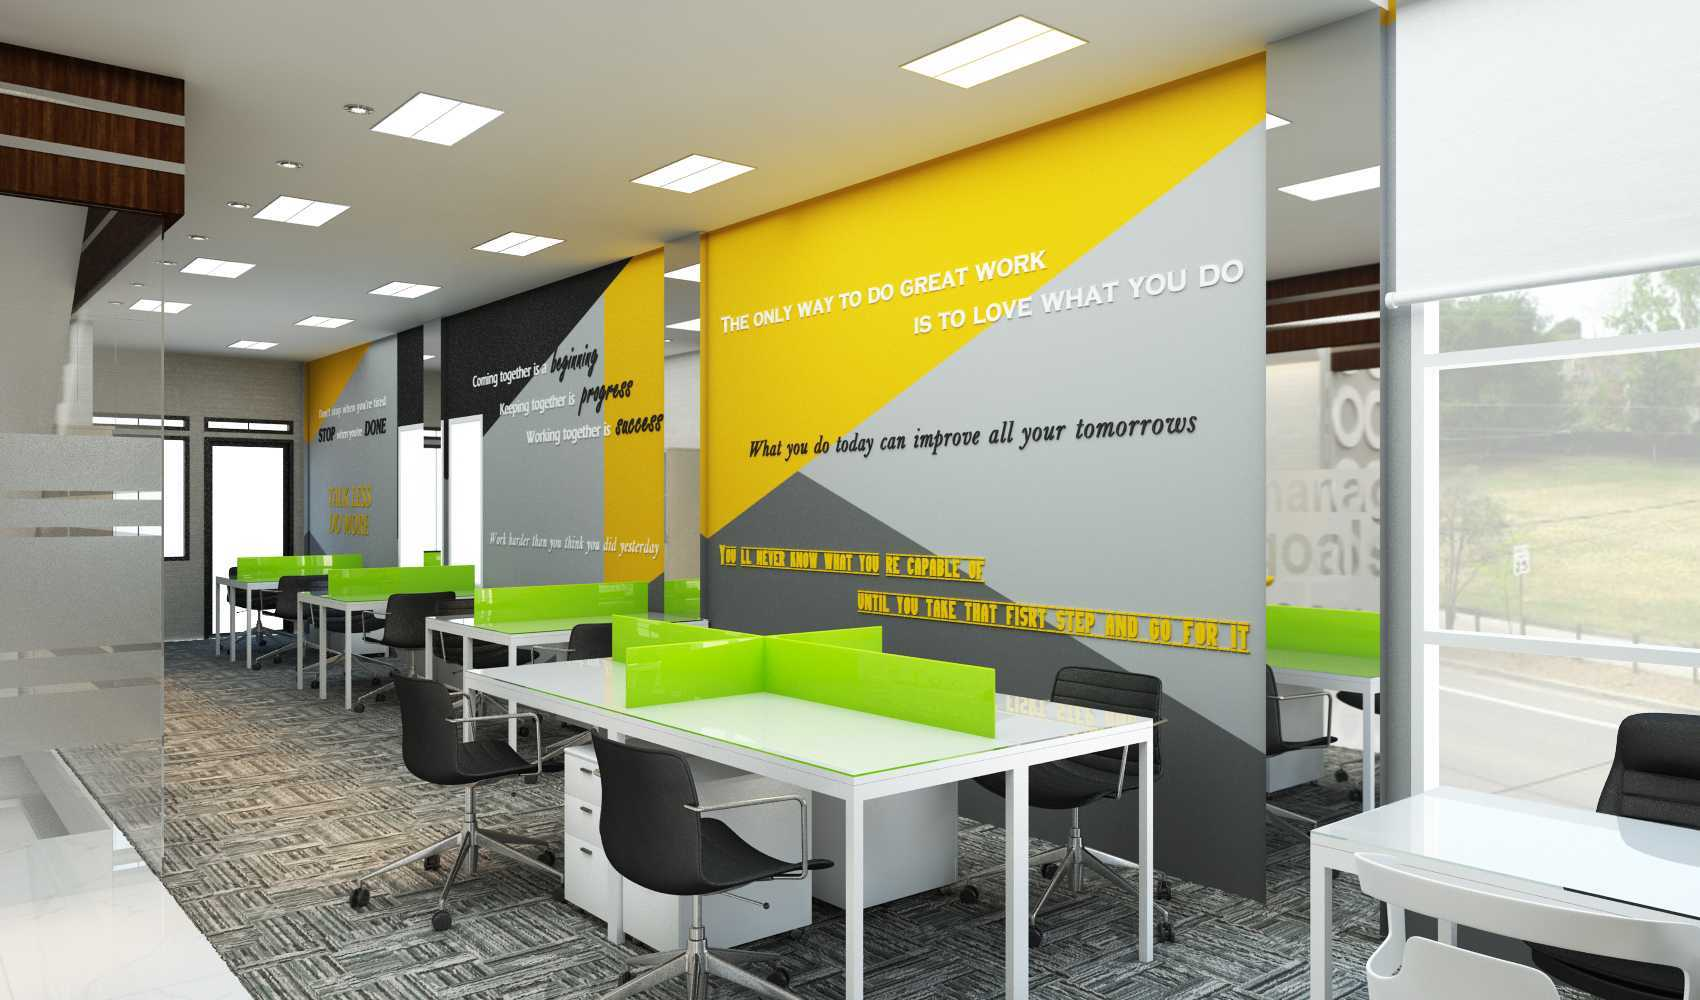 Valentine Oriza Modern Office Design  Pontianak, West Kalimantan, Indonesia 07   30312